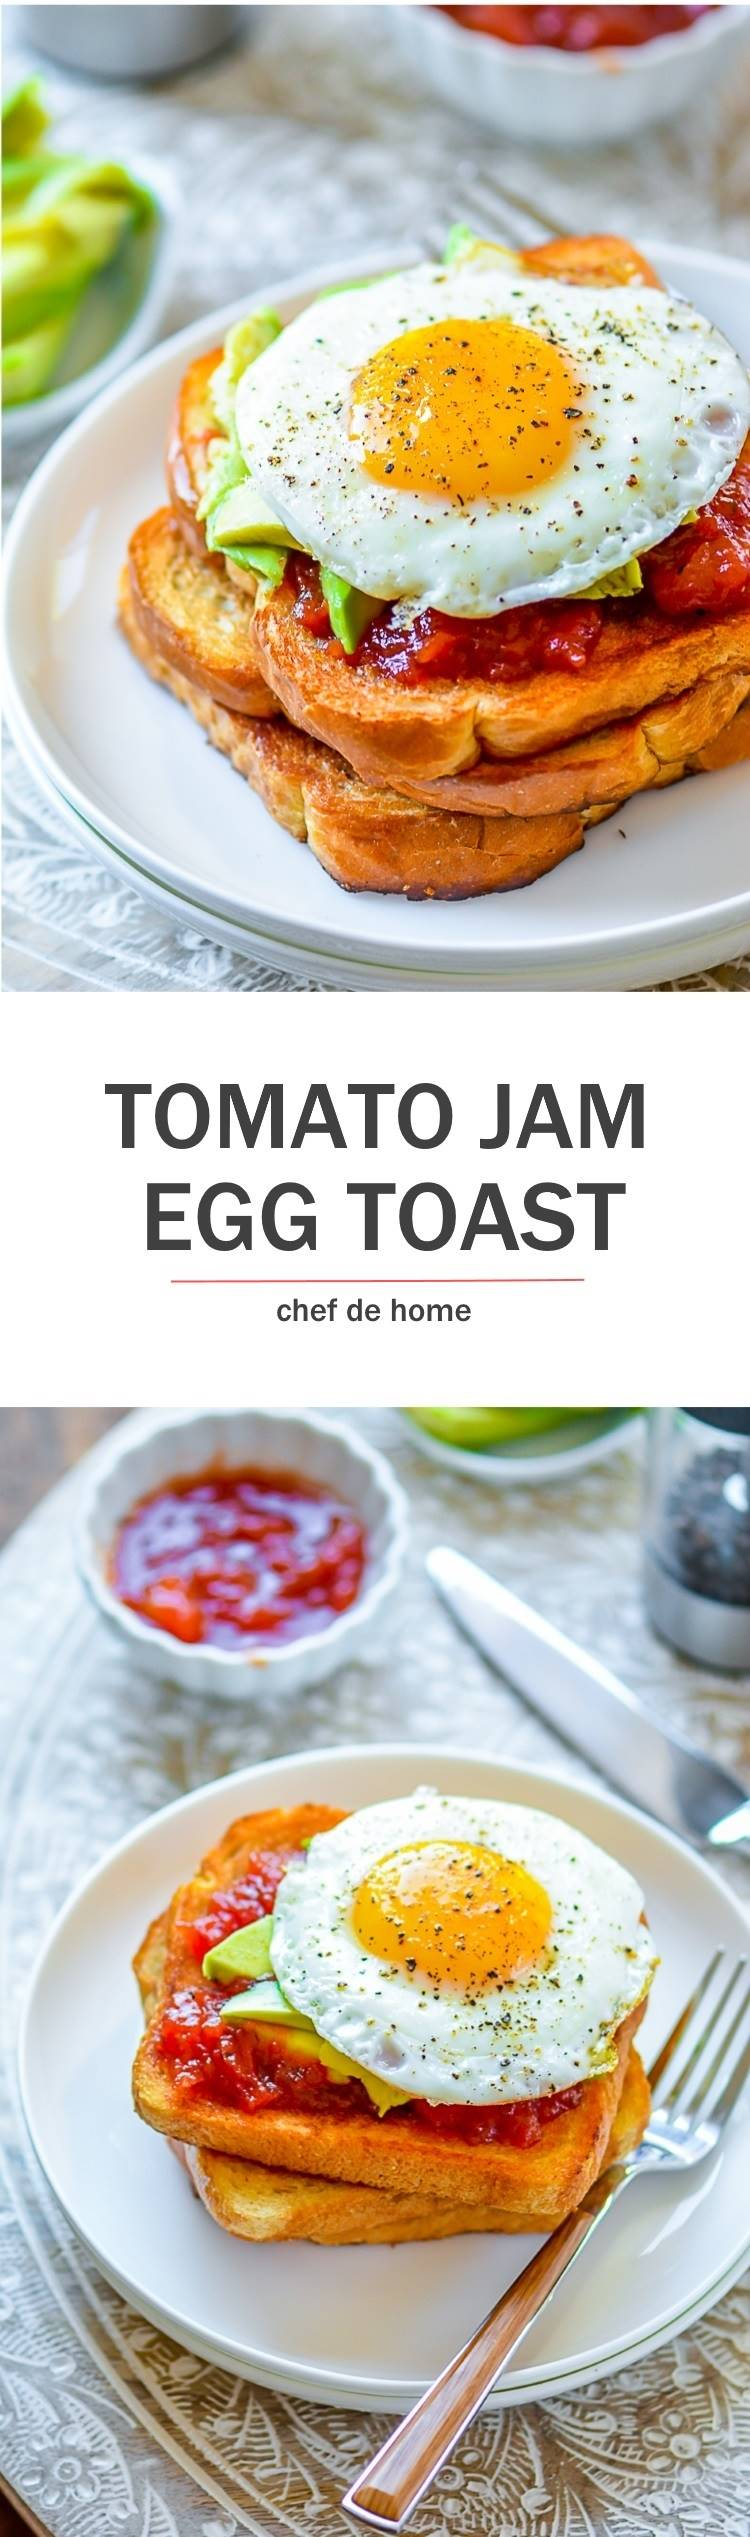 Sunny Side up Eggs with runny yolk and avocado and fresh homemade Tomato Jam on a toast for breakfast | chefdehome.com